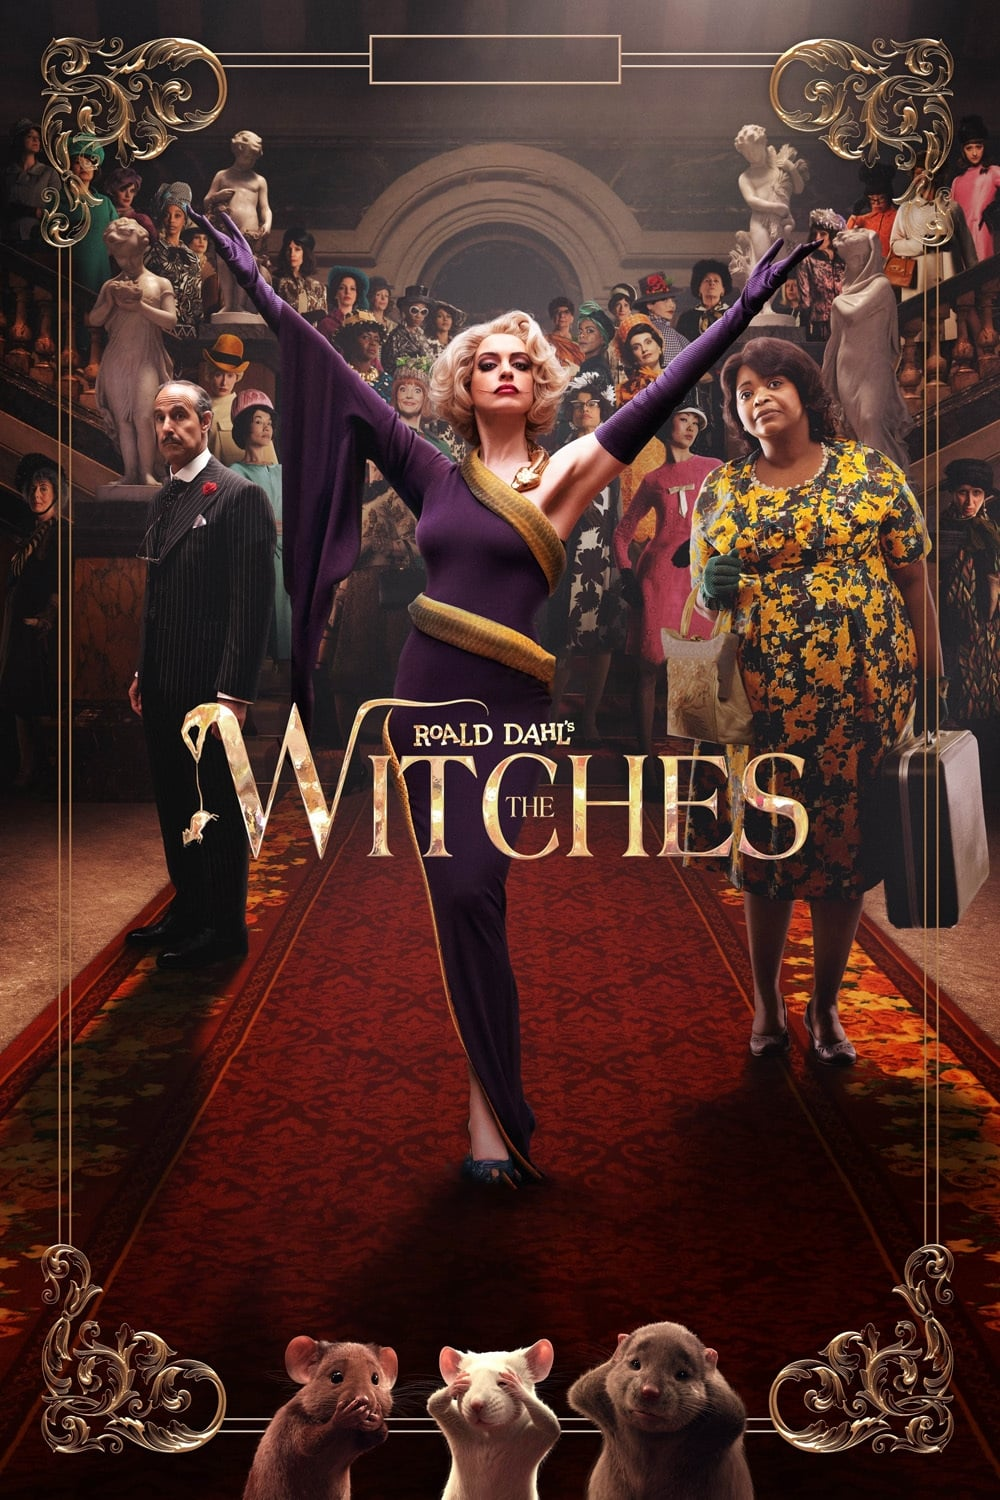 Poster and image movie The Witches